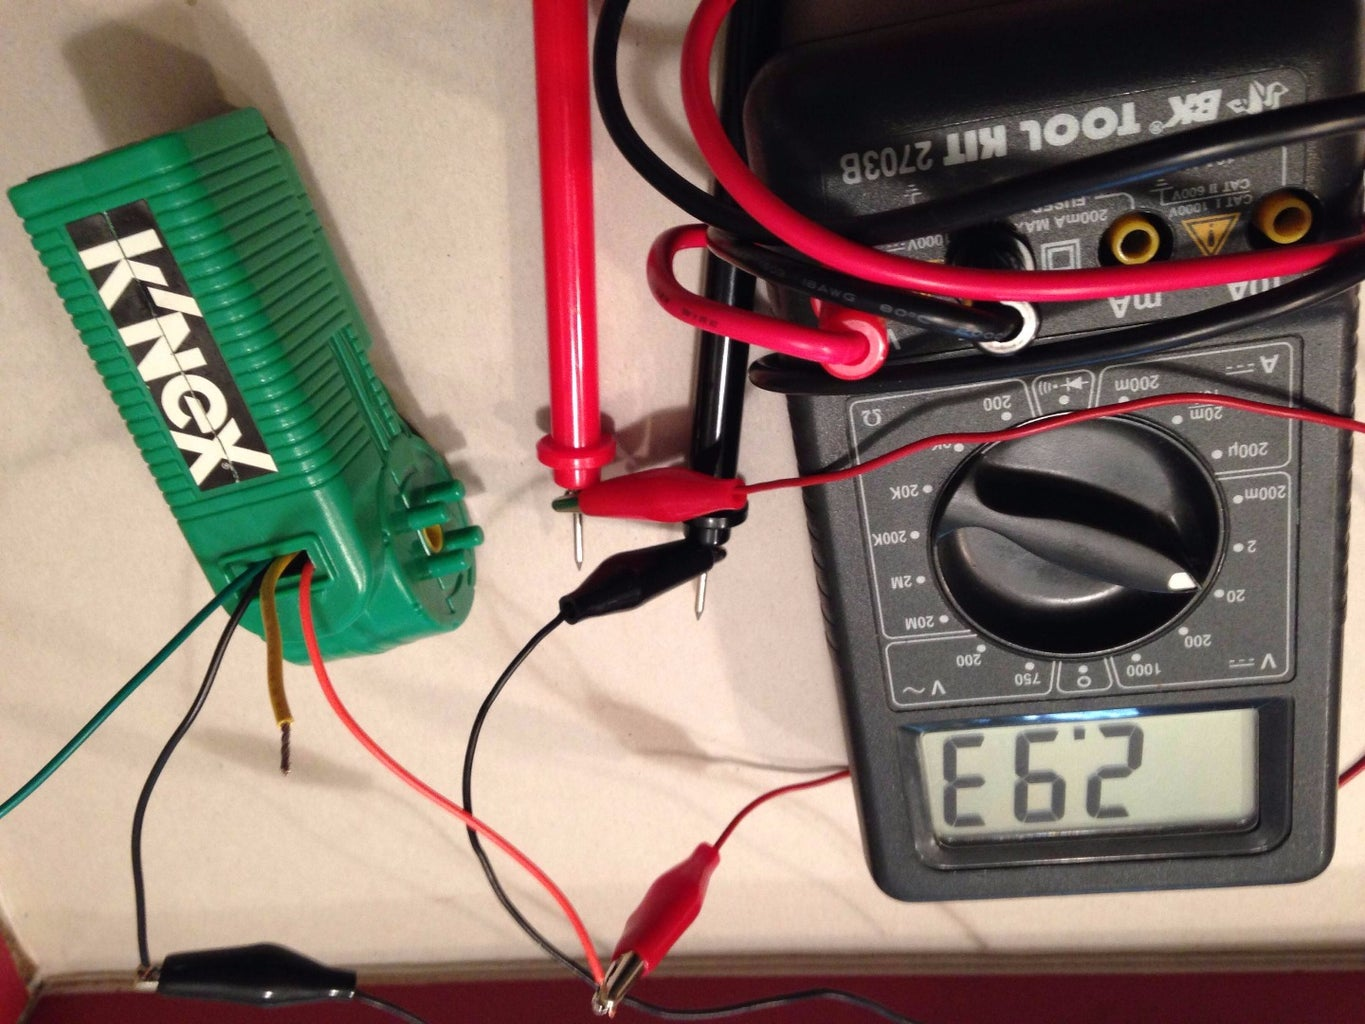 Test Your Wiring